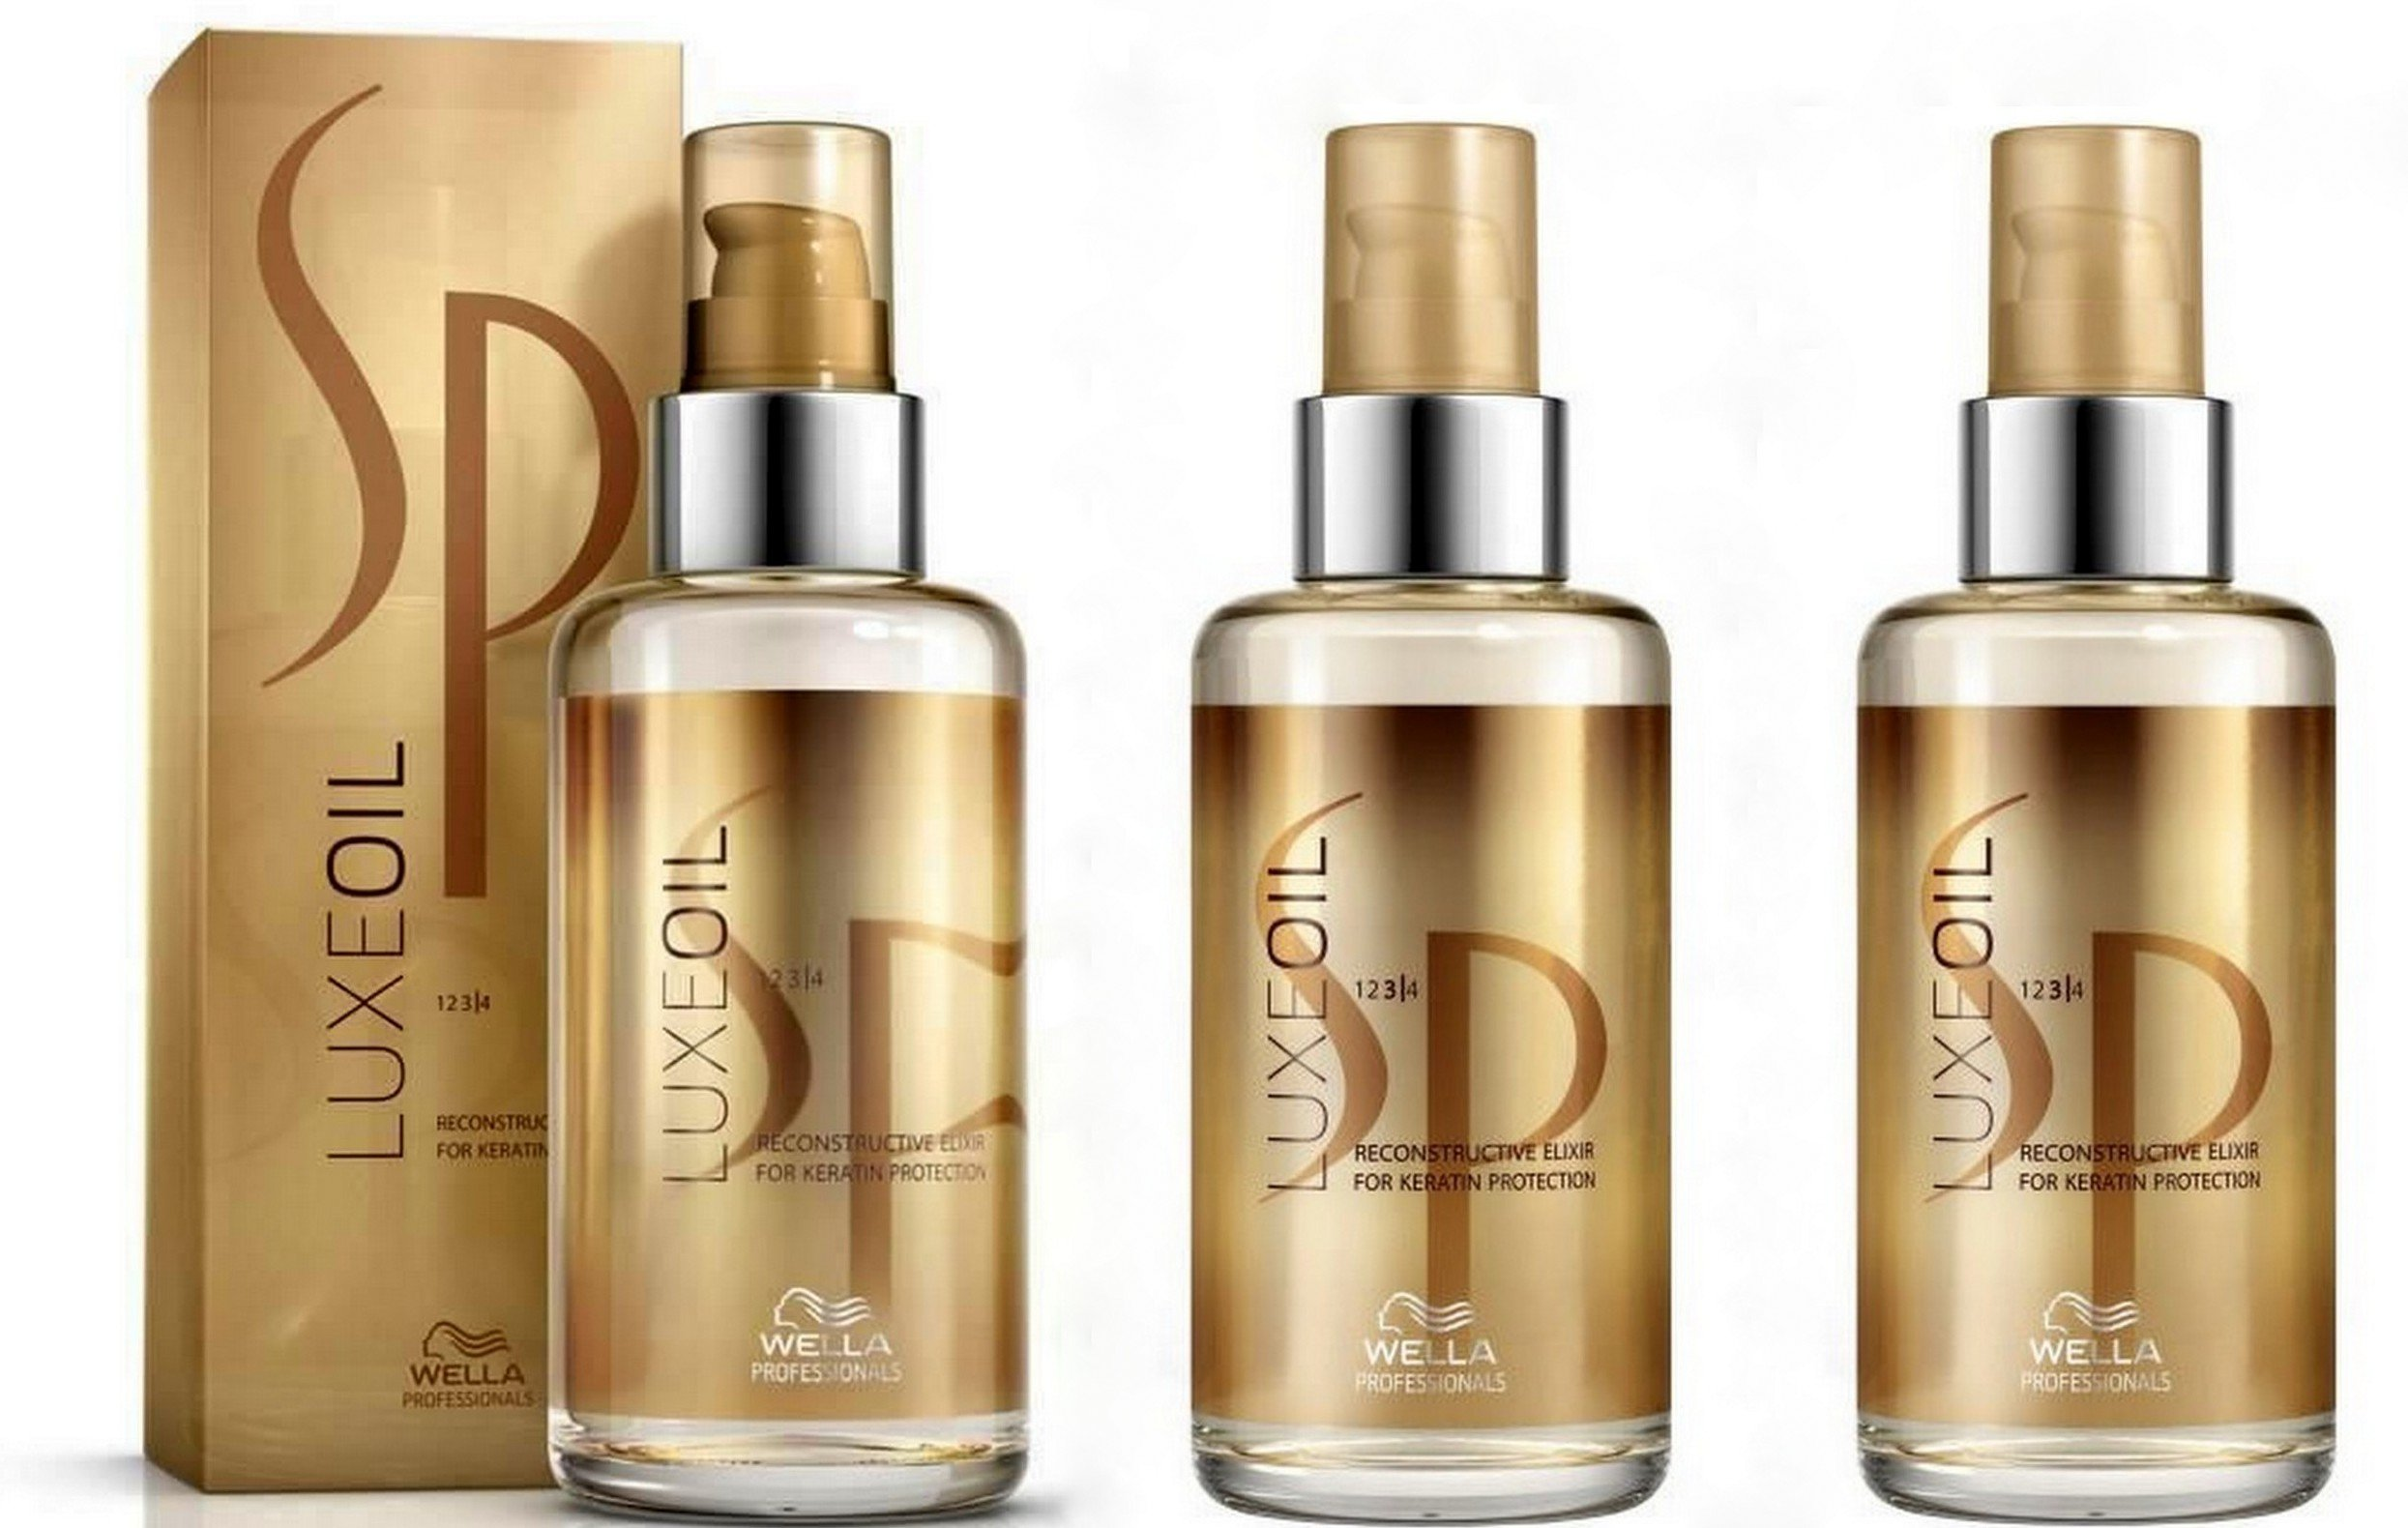 Wella System Professional SP Luxe Oil 3x 100ml = 300ml [Badartikel] by Wella